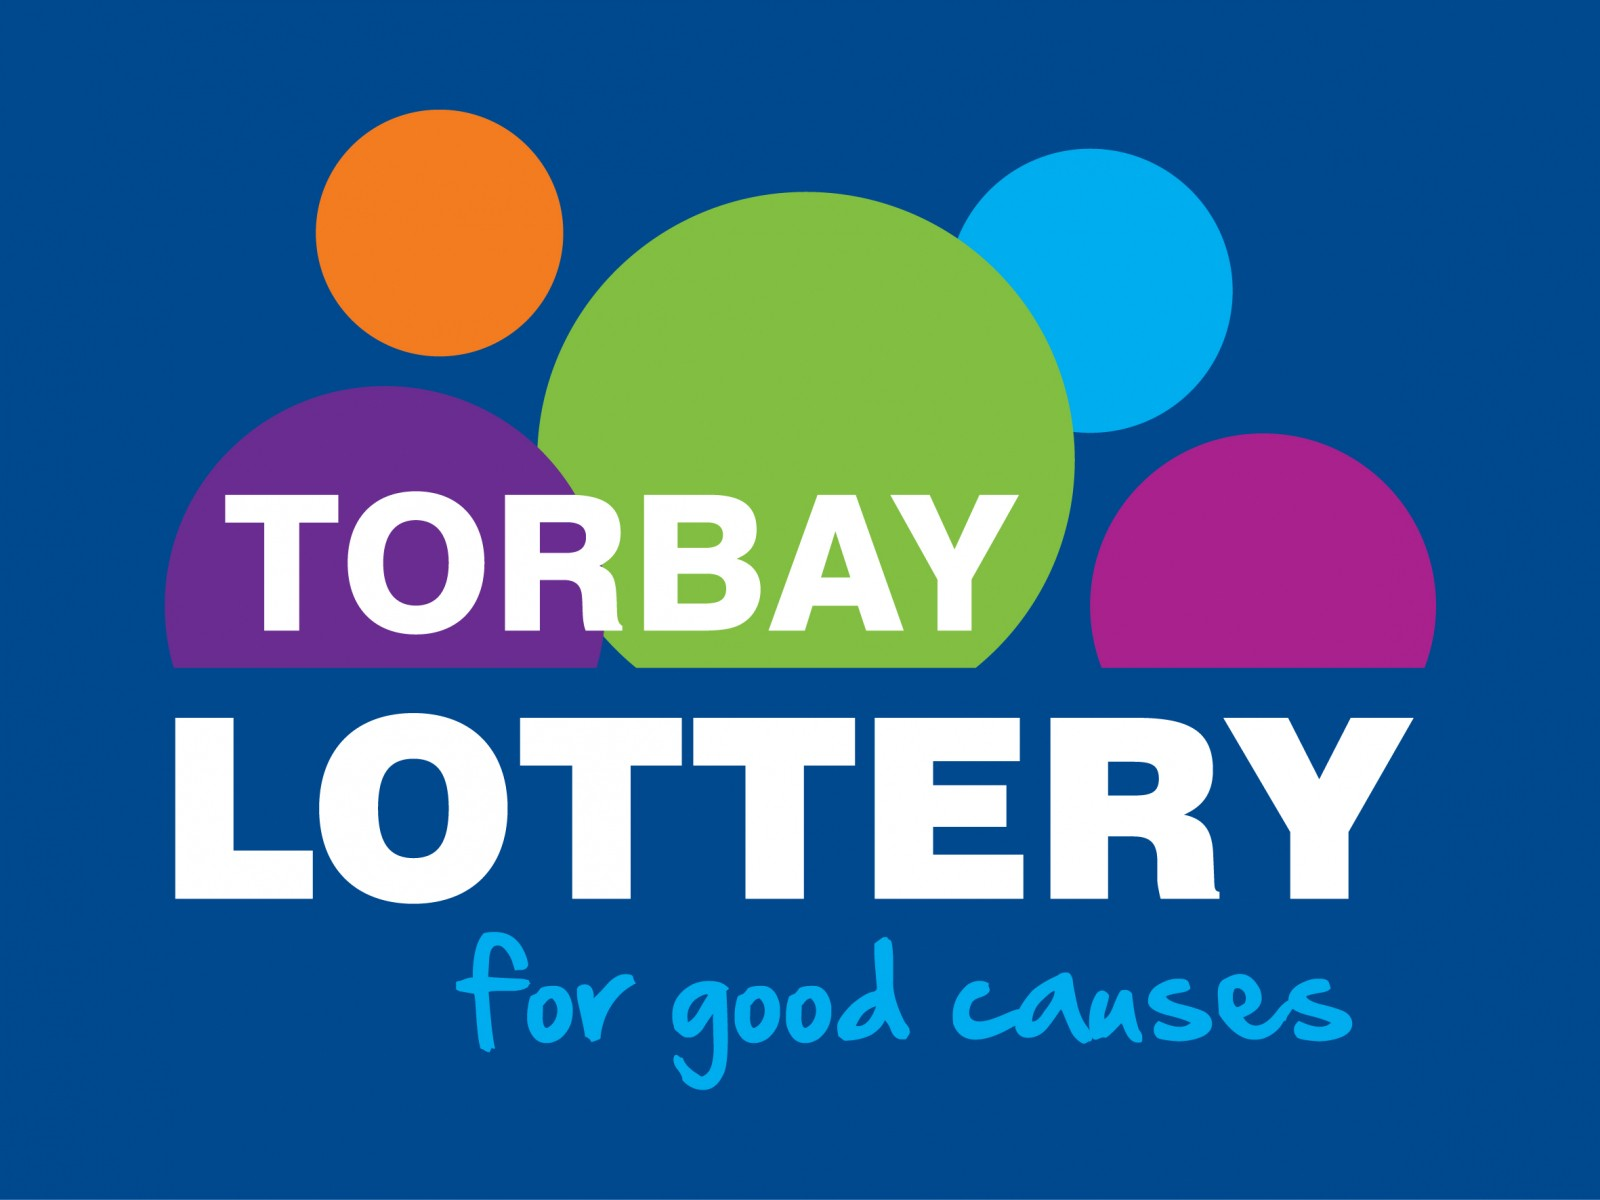 3 today! Torbay Lottery celebrates